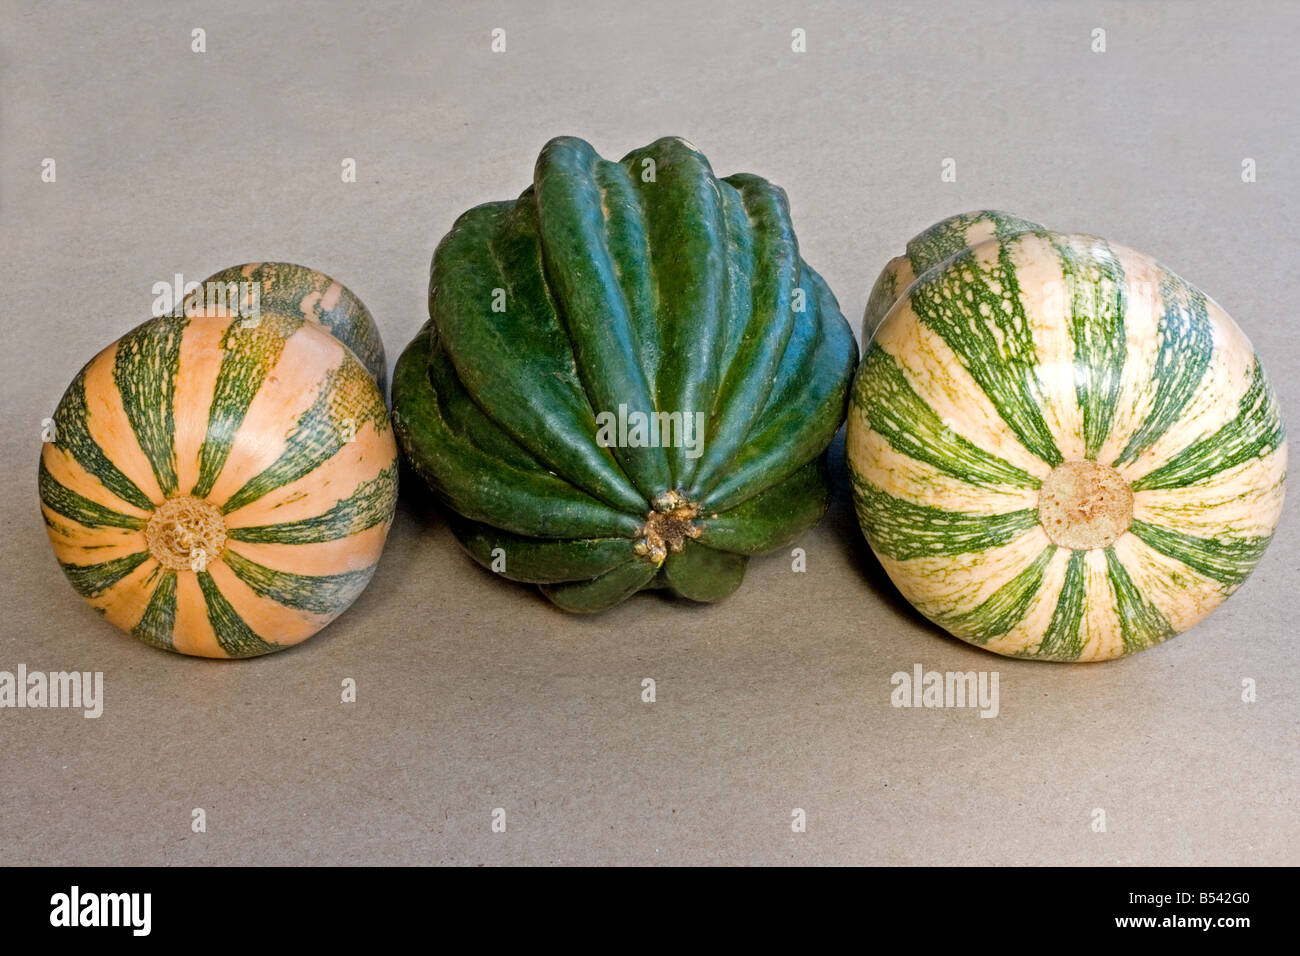 Gourd close-up on neutral background - Stock Image